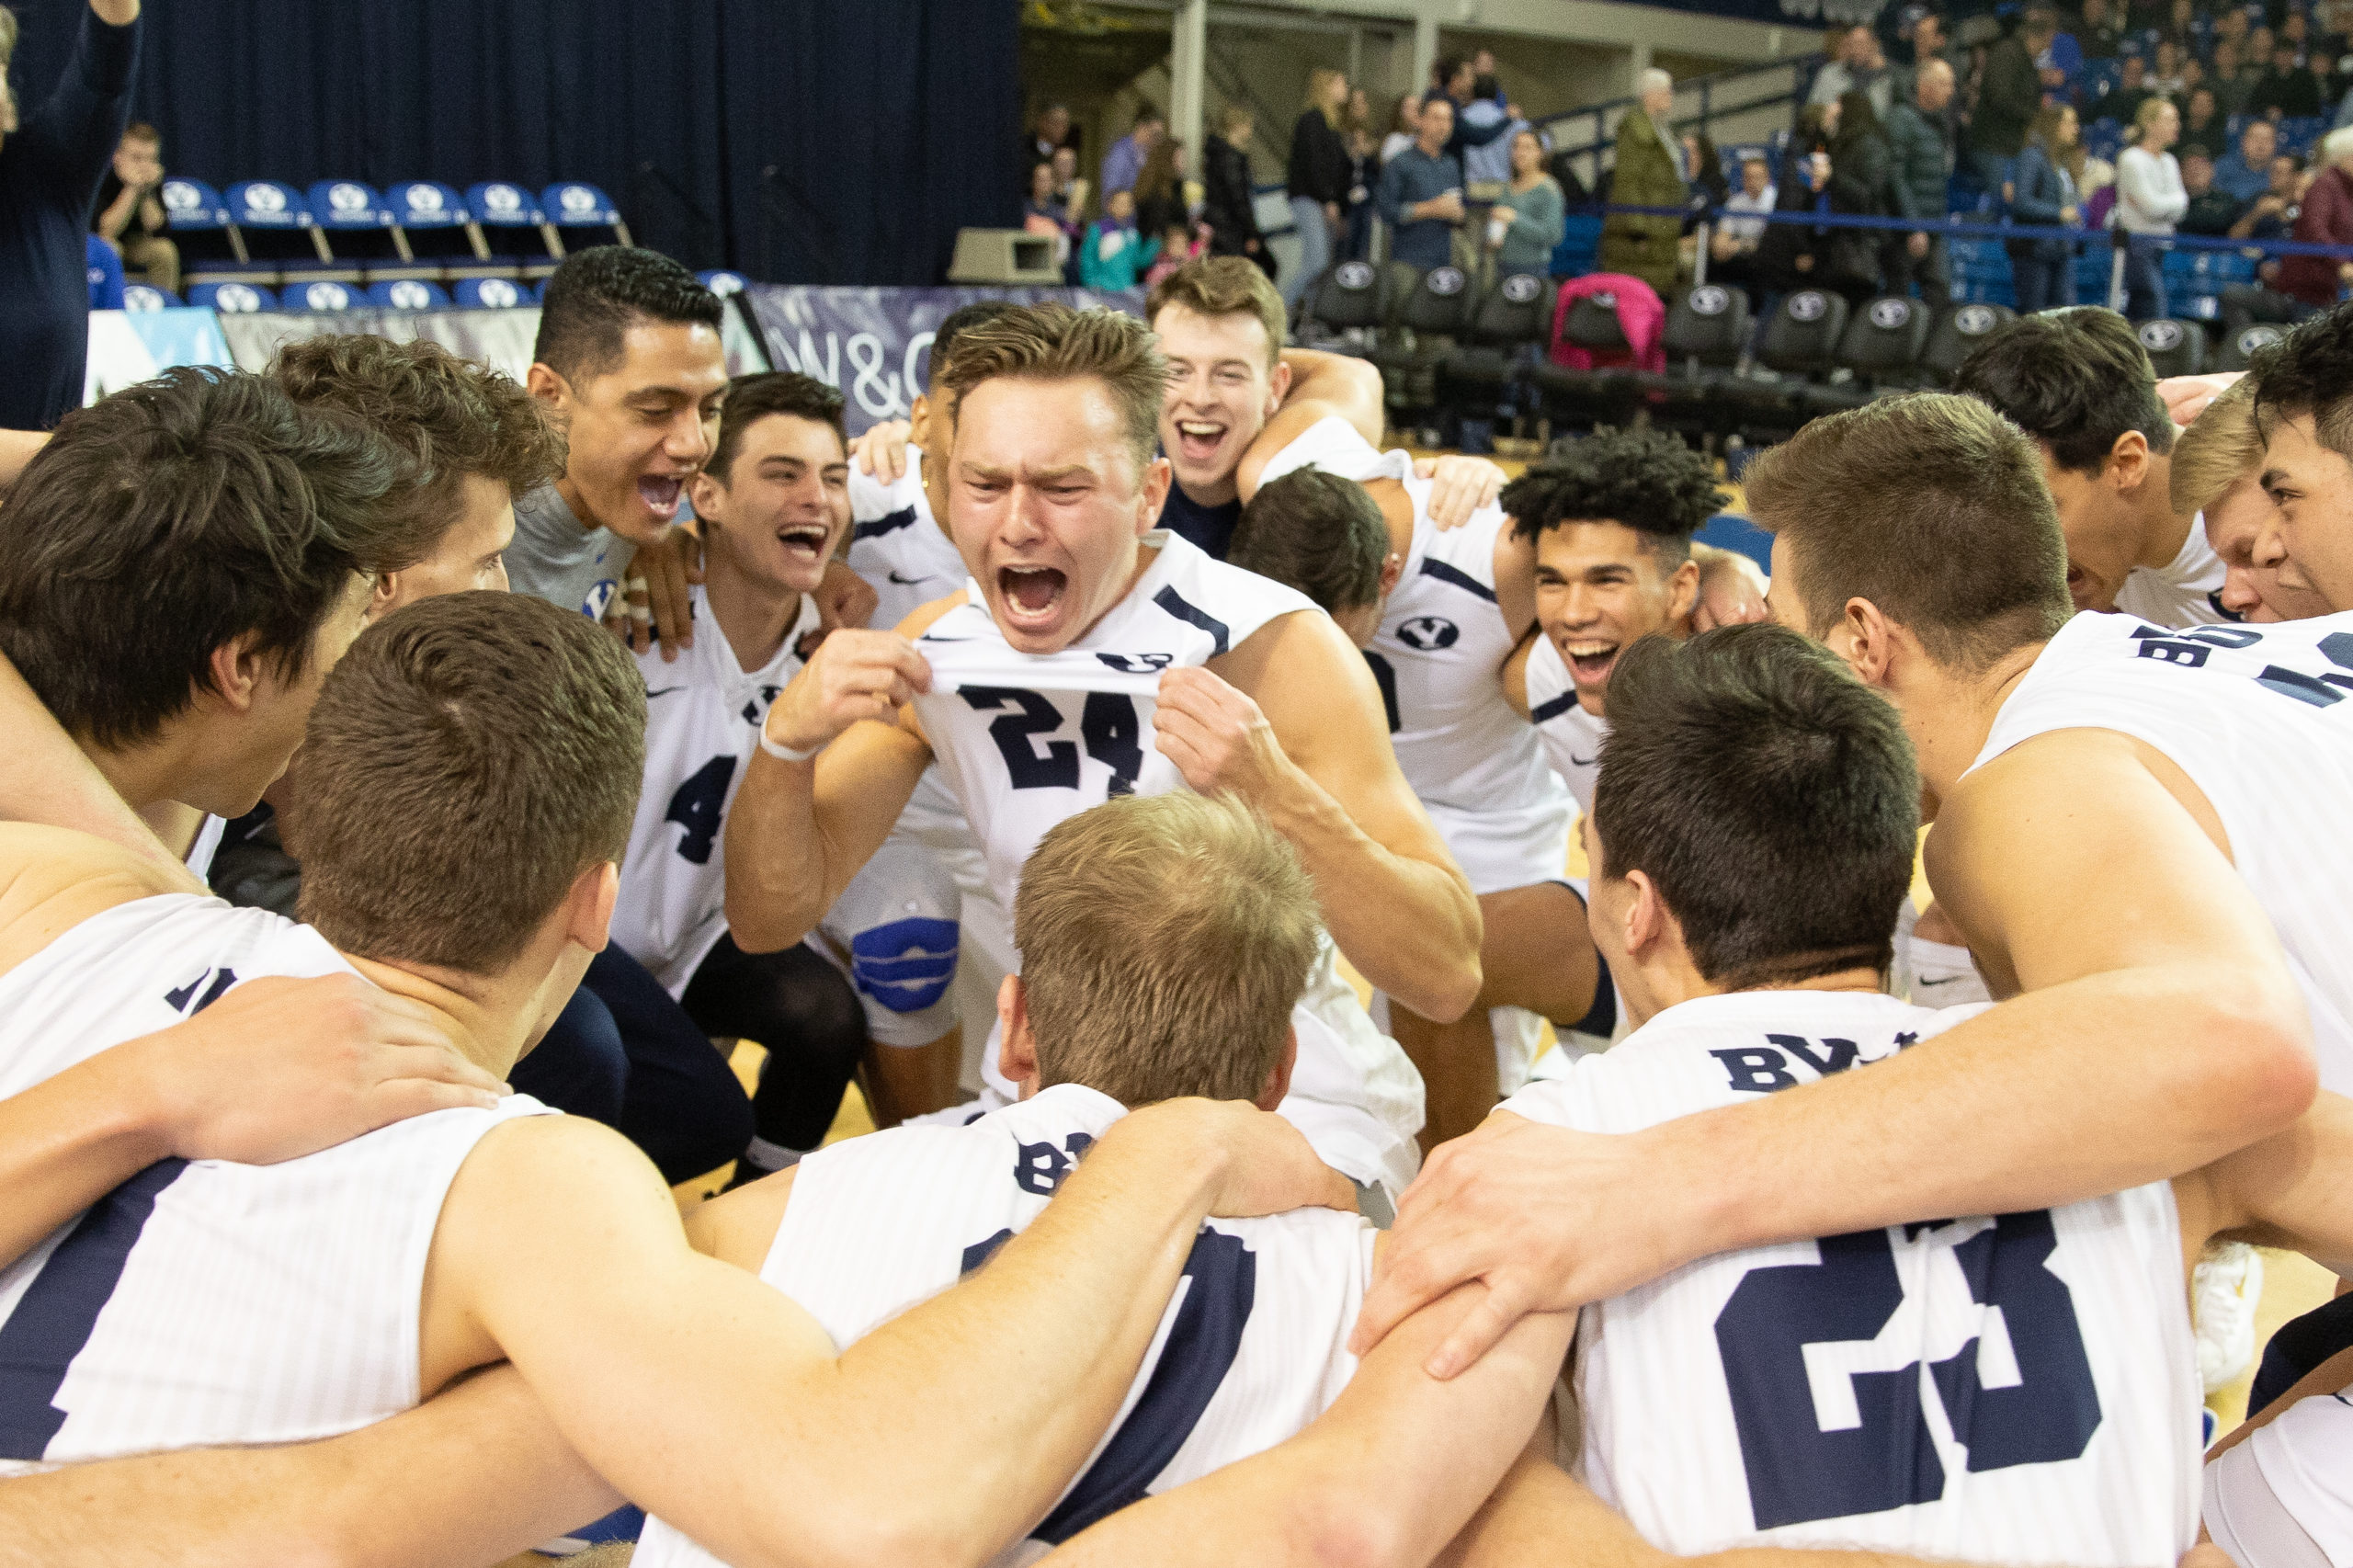 No 2 Byu Men S Volleyball Remains Undefeated After Victories Over No 3 Ucsb The Daily Universe